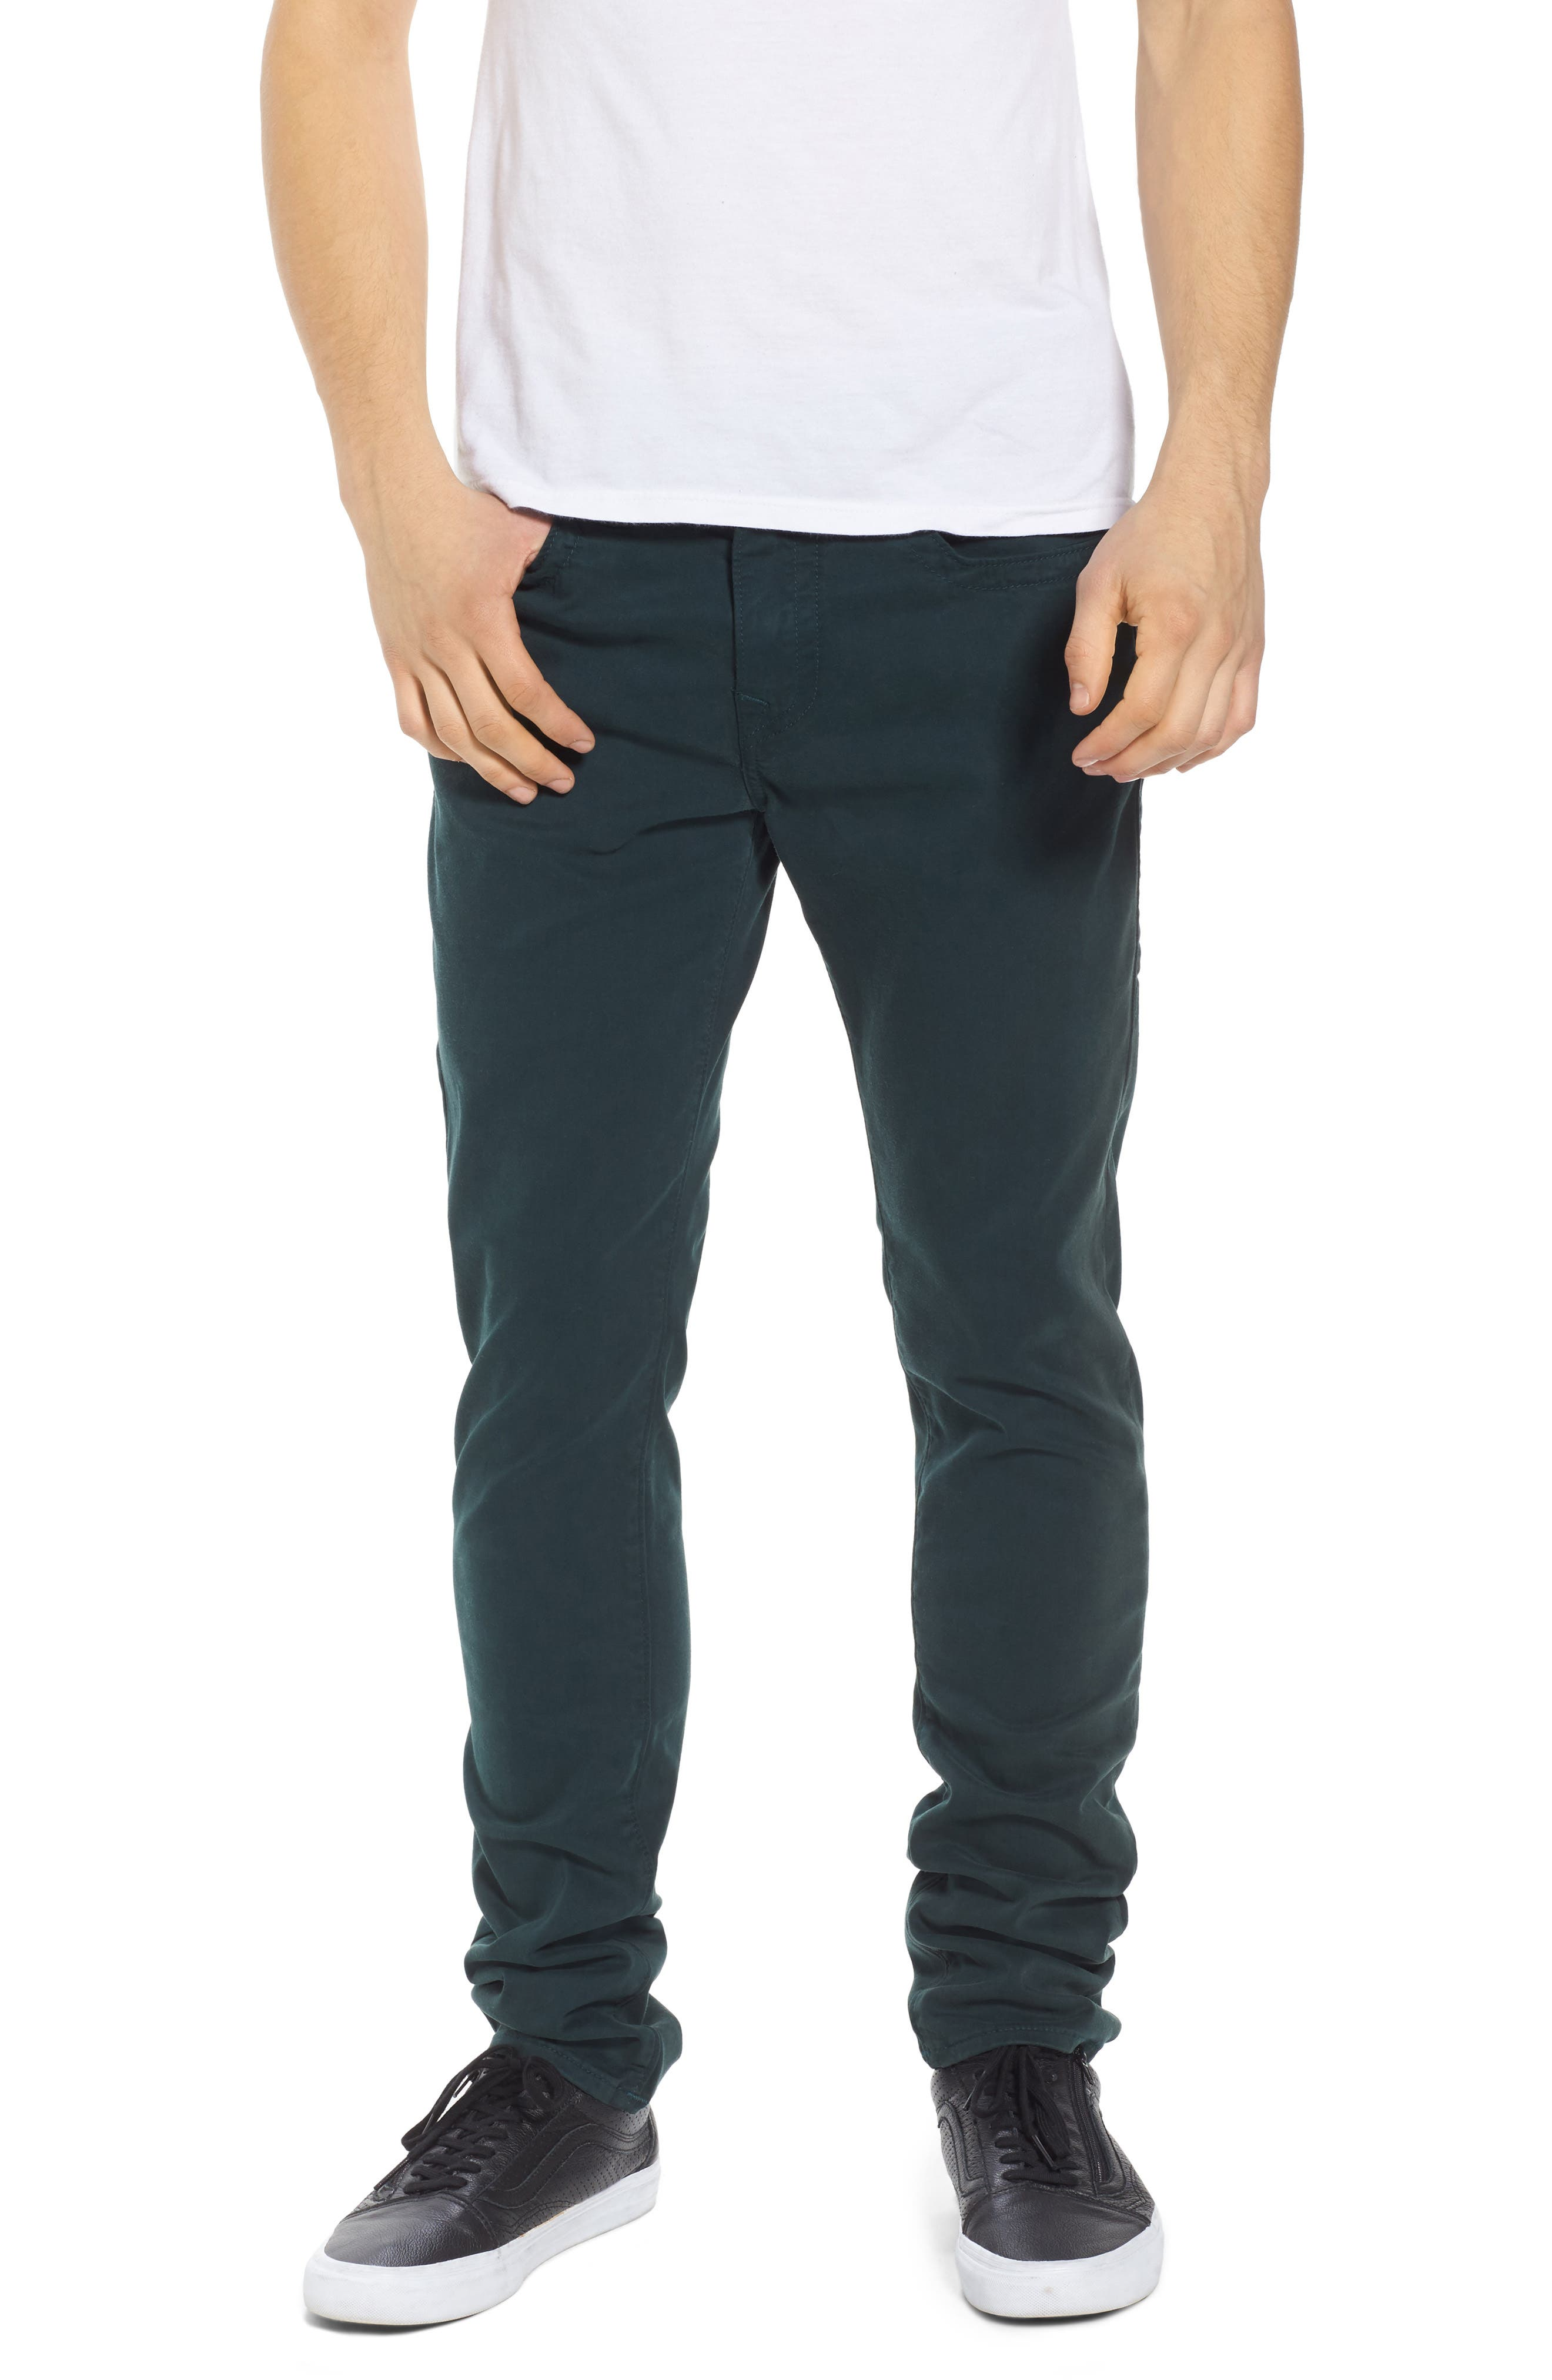 True Religion Brand Jeans Rocco Skinny Fit Jeans (Hunter Green)